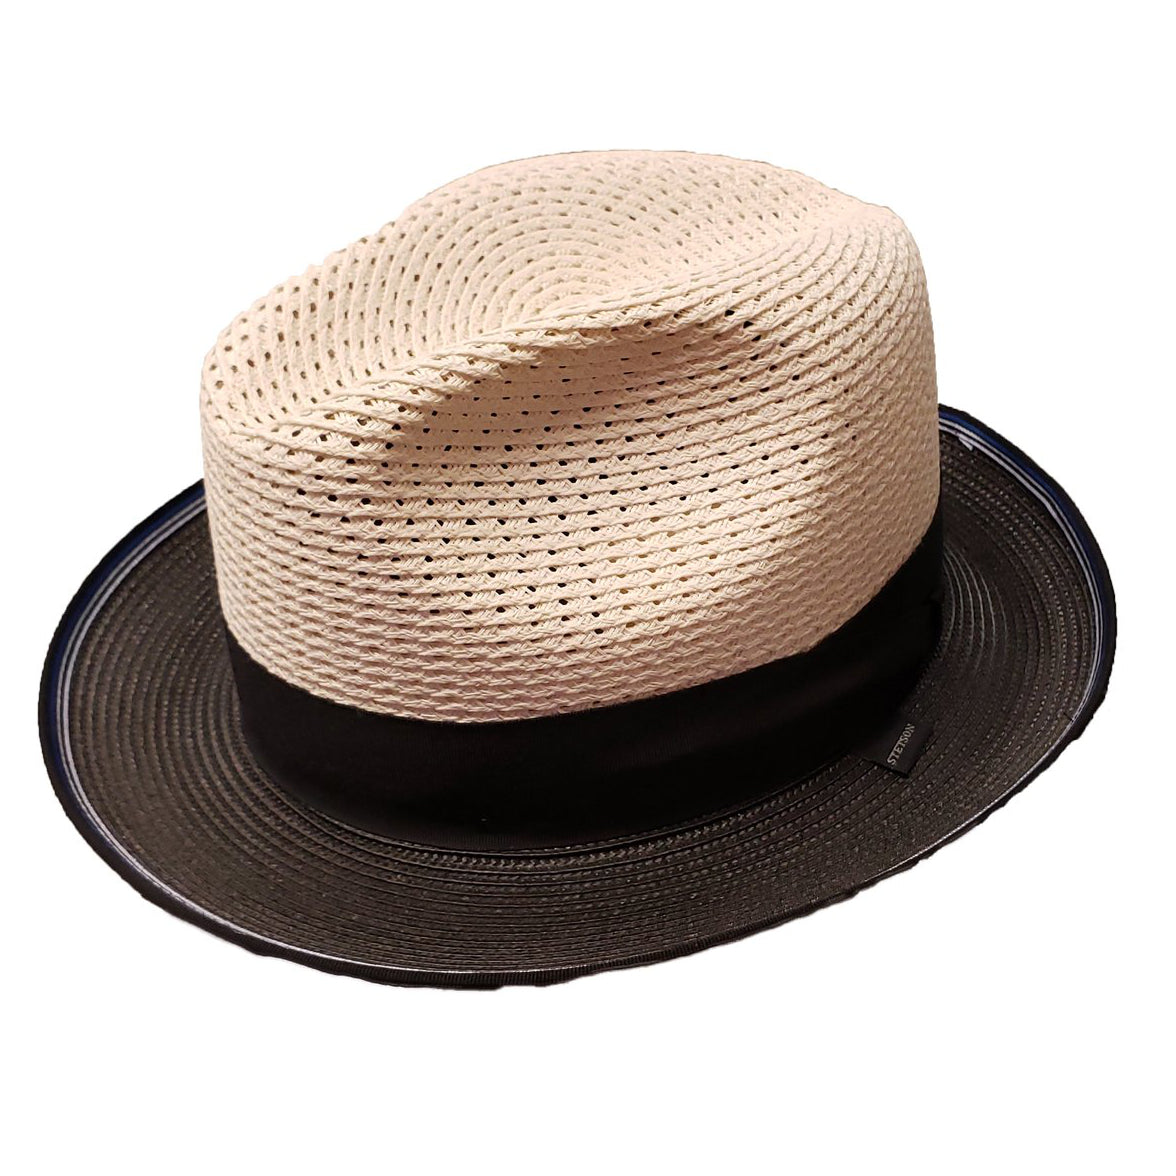 Gaston Vented Fedora - Beige / Black Hat - Dapperfam.com